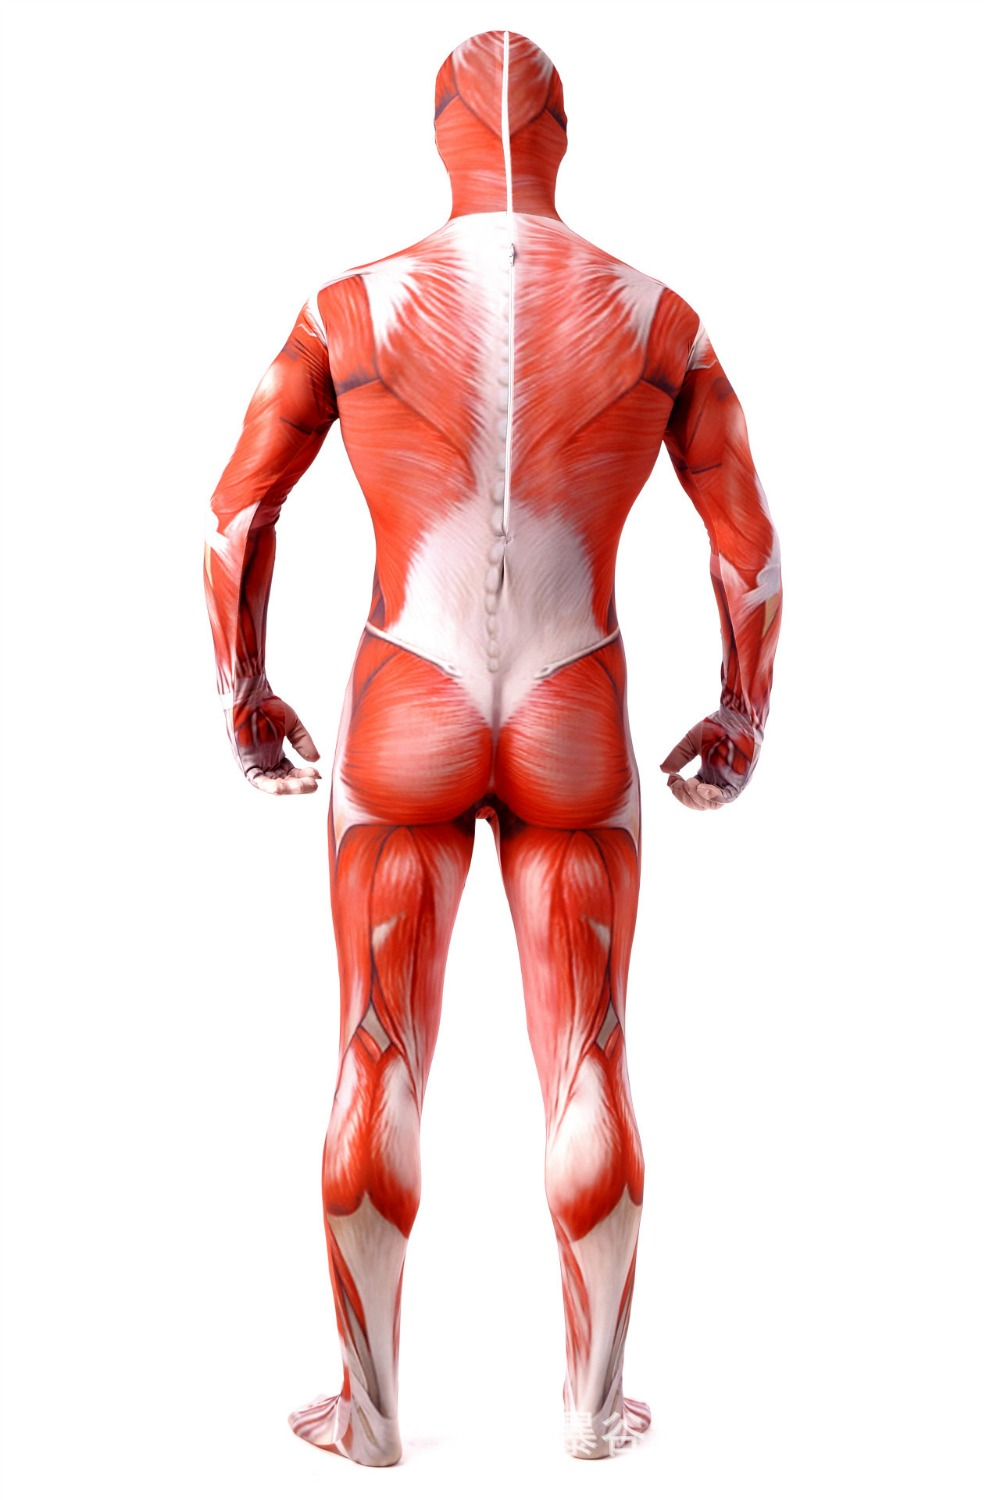 Aliexpress Buy Attack On Titan Men Cosplay Costumes Titans Muscle Muscular Suit Bodysuit Bertolt Hoover Lycra Flesh Zentai Halloween Cost S 2xl